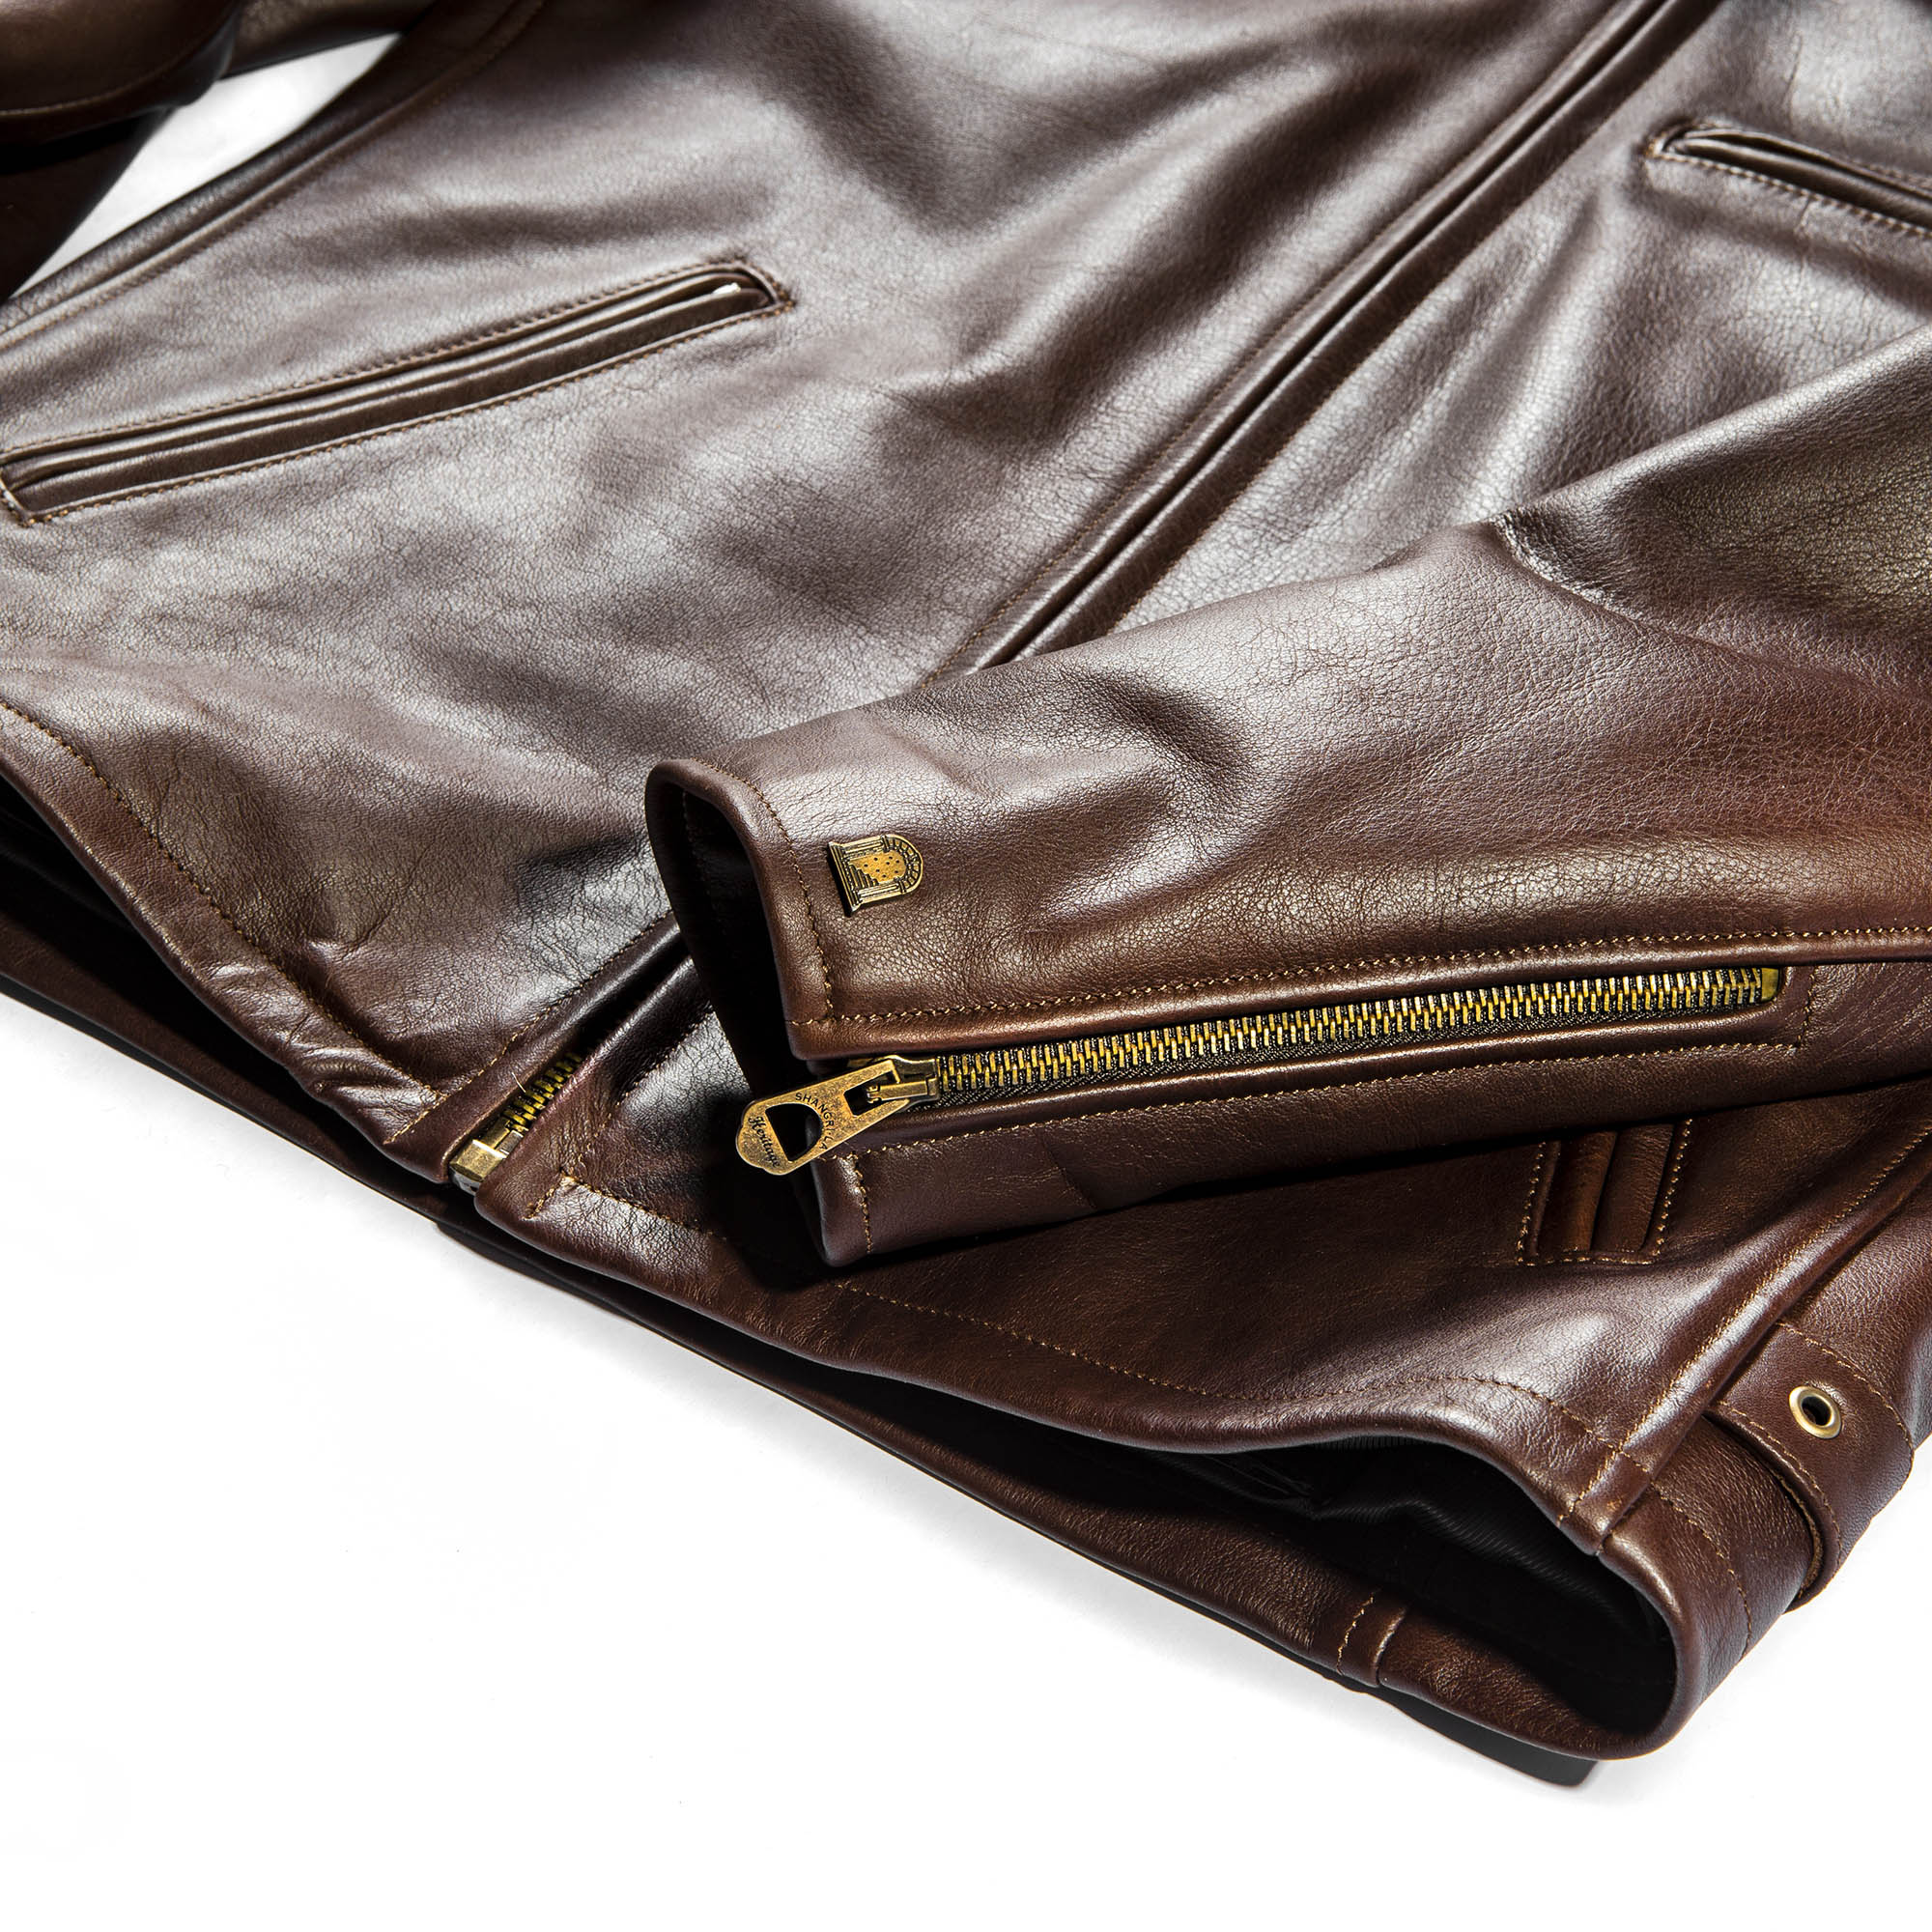 shangri-la-heritage-varenne-brown-steerhide-jacket-still-life-sleeve